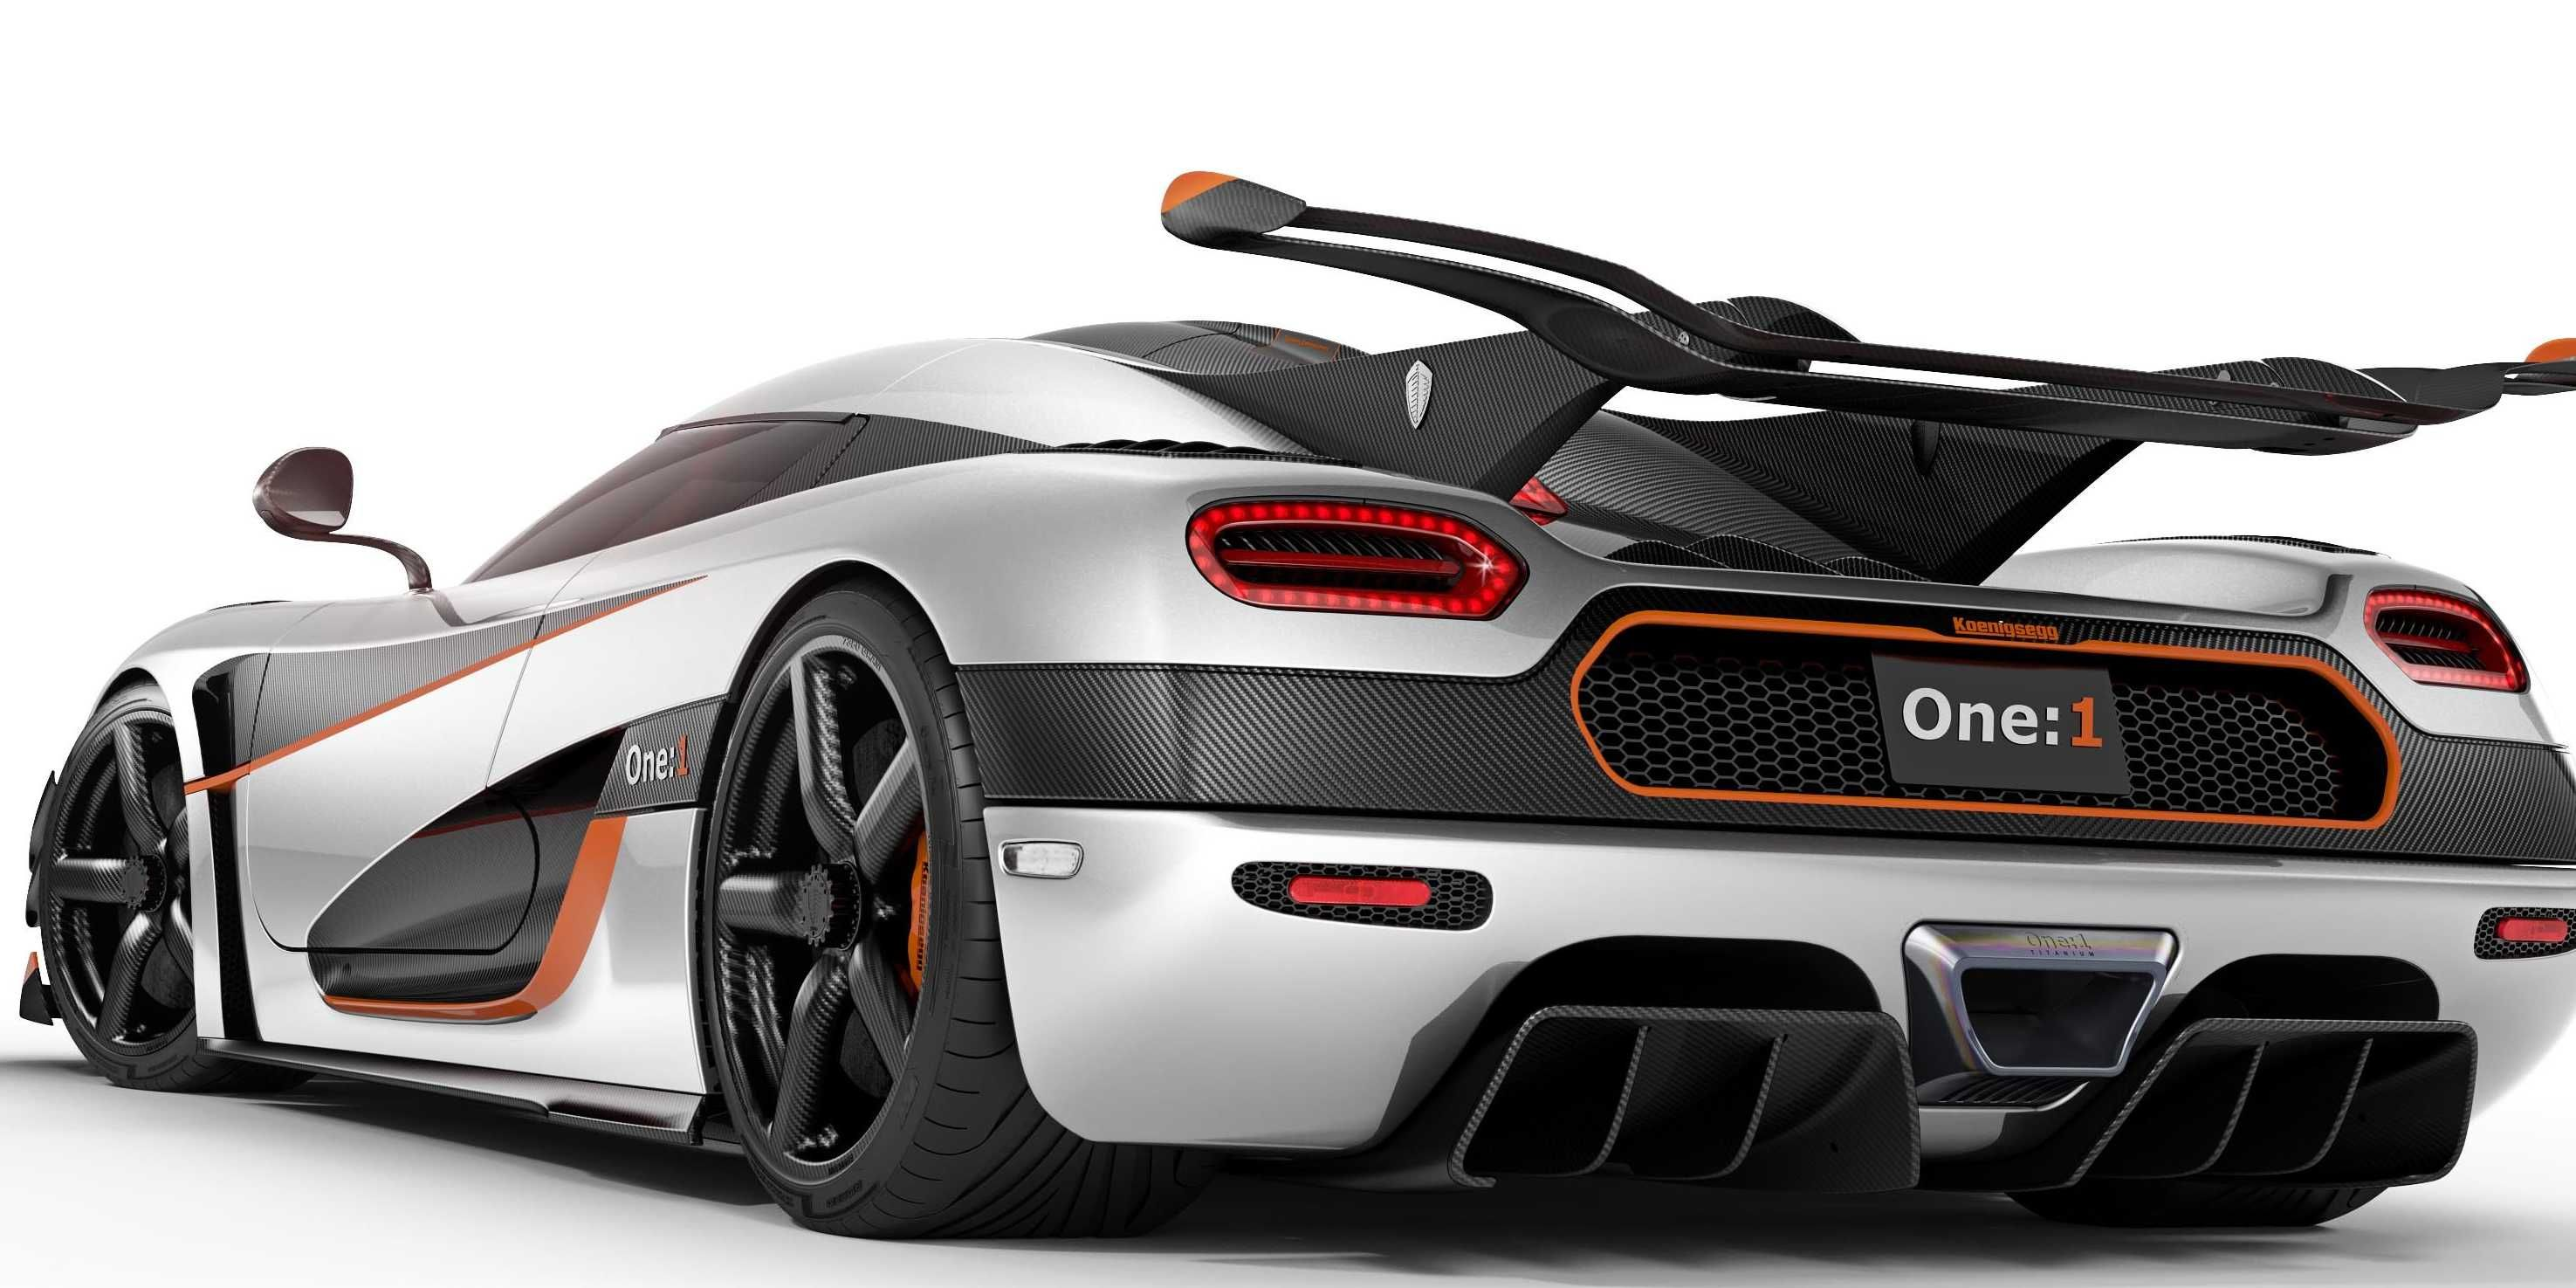 The Fastest Car In The World 2015 >> Fastest Cars Fastest Car In The World 2015 Cars Super